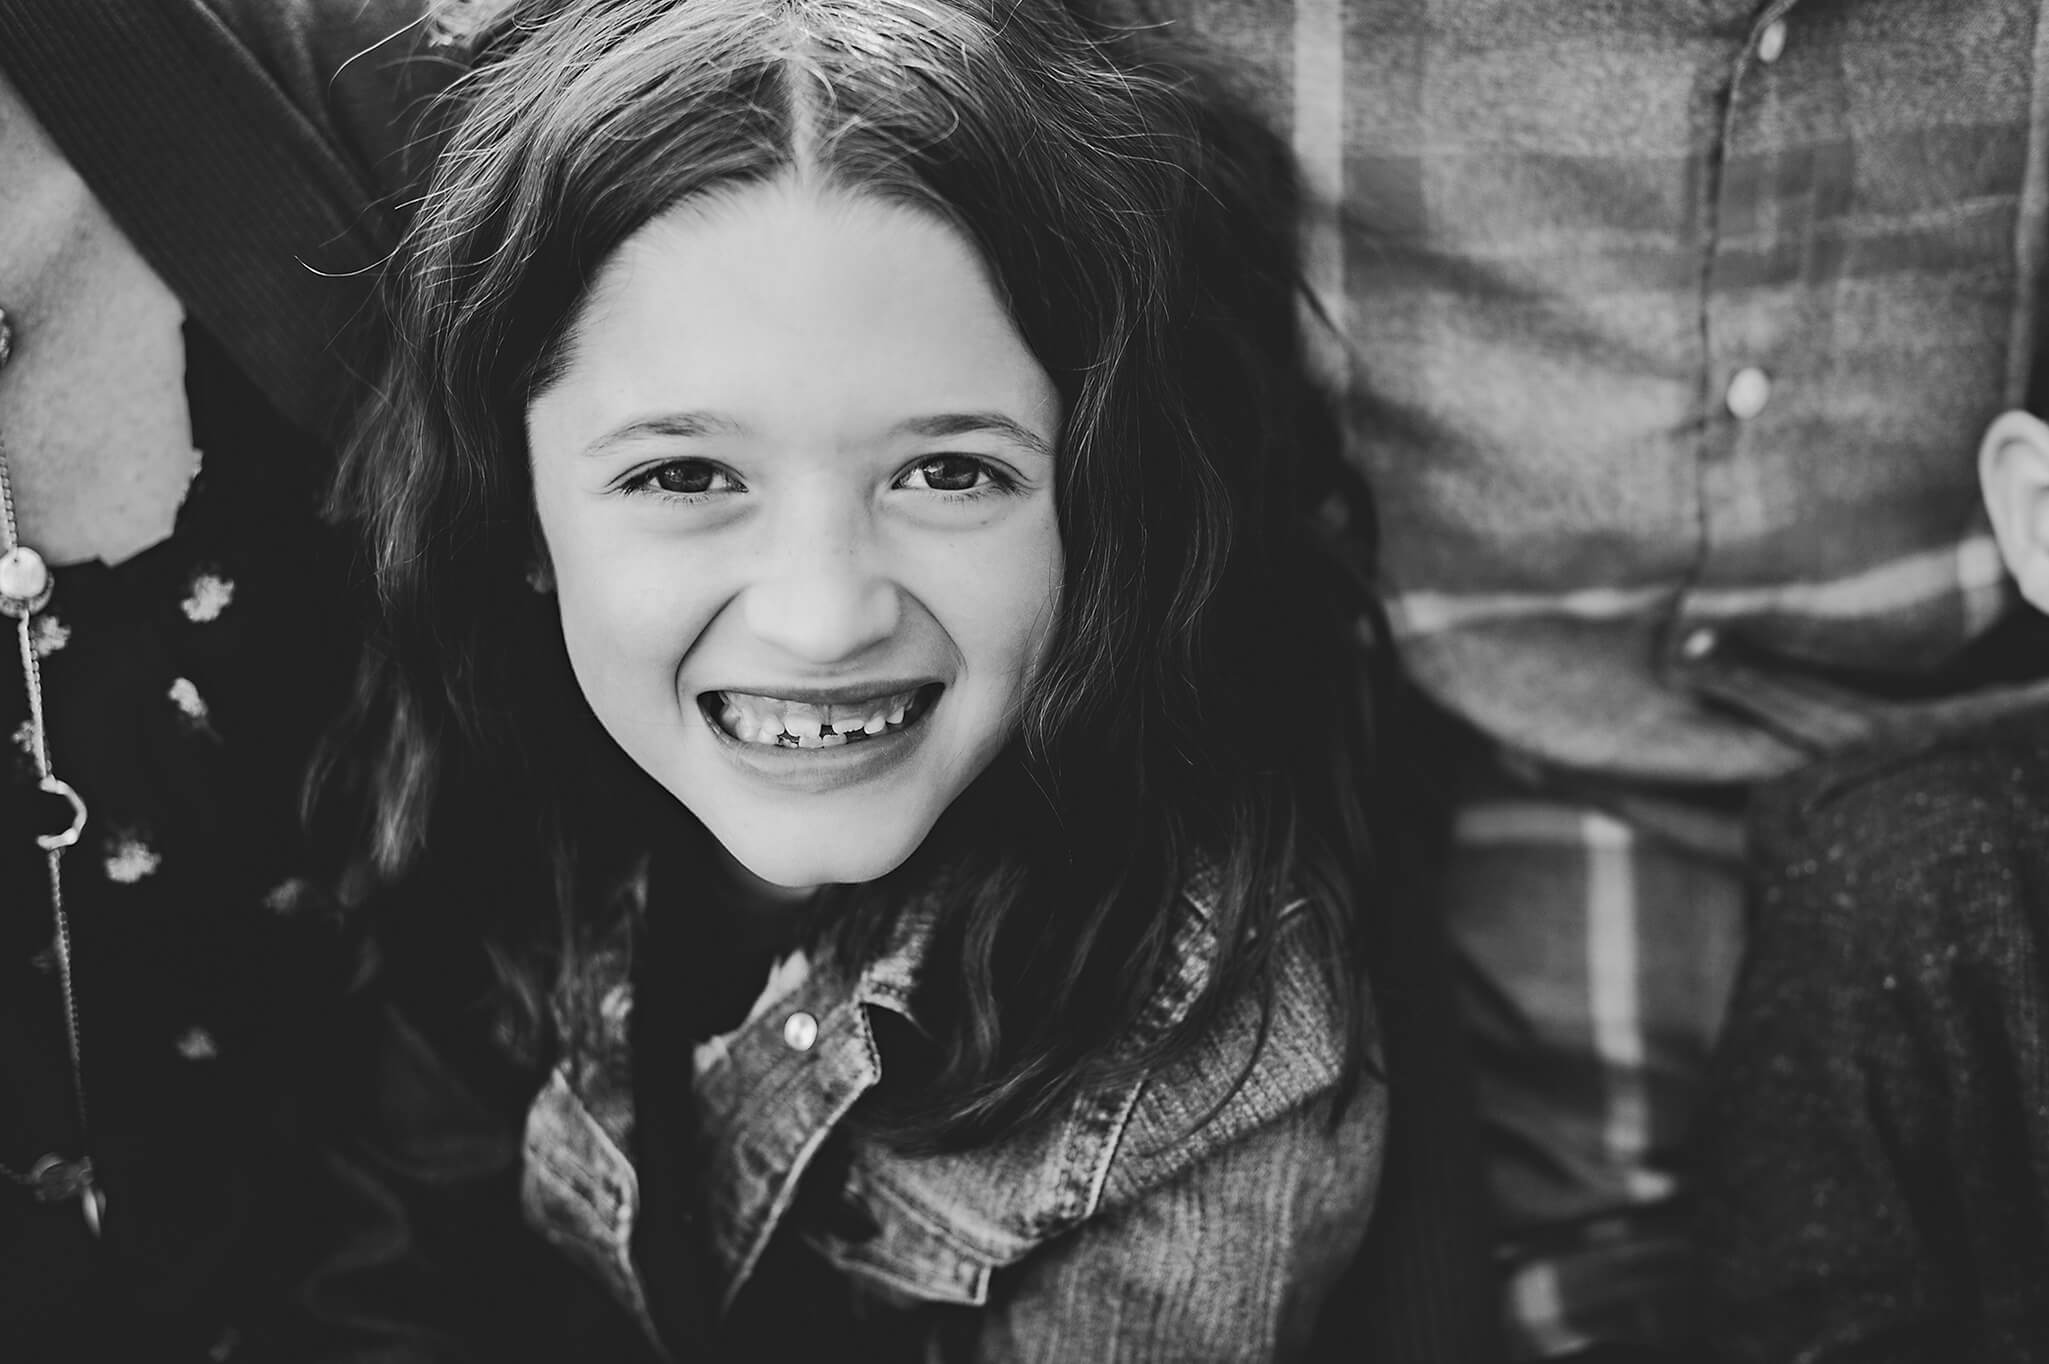 Little girl with big smile during family portraits.